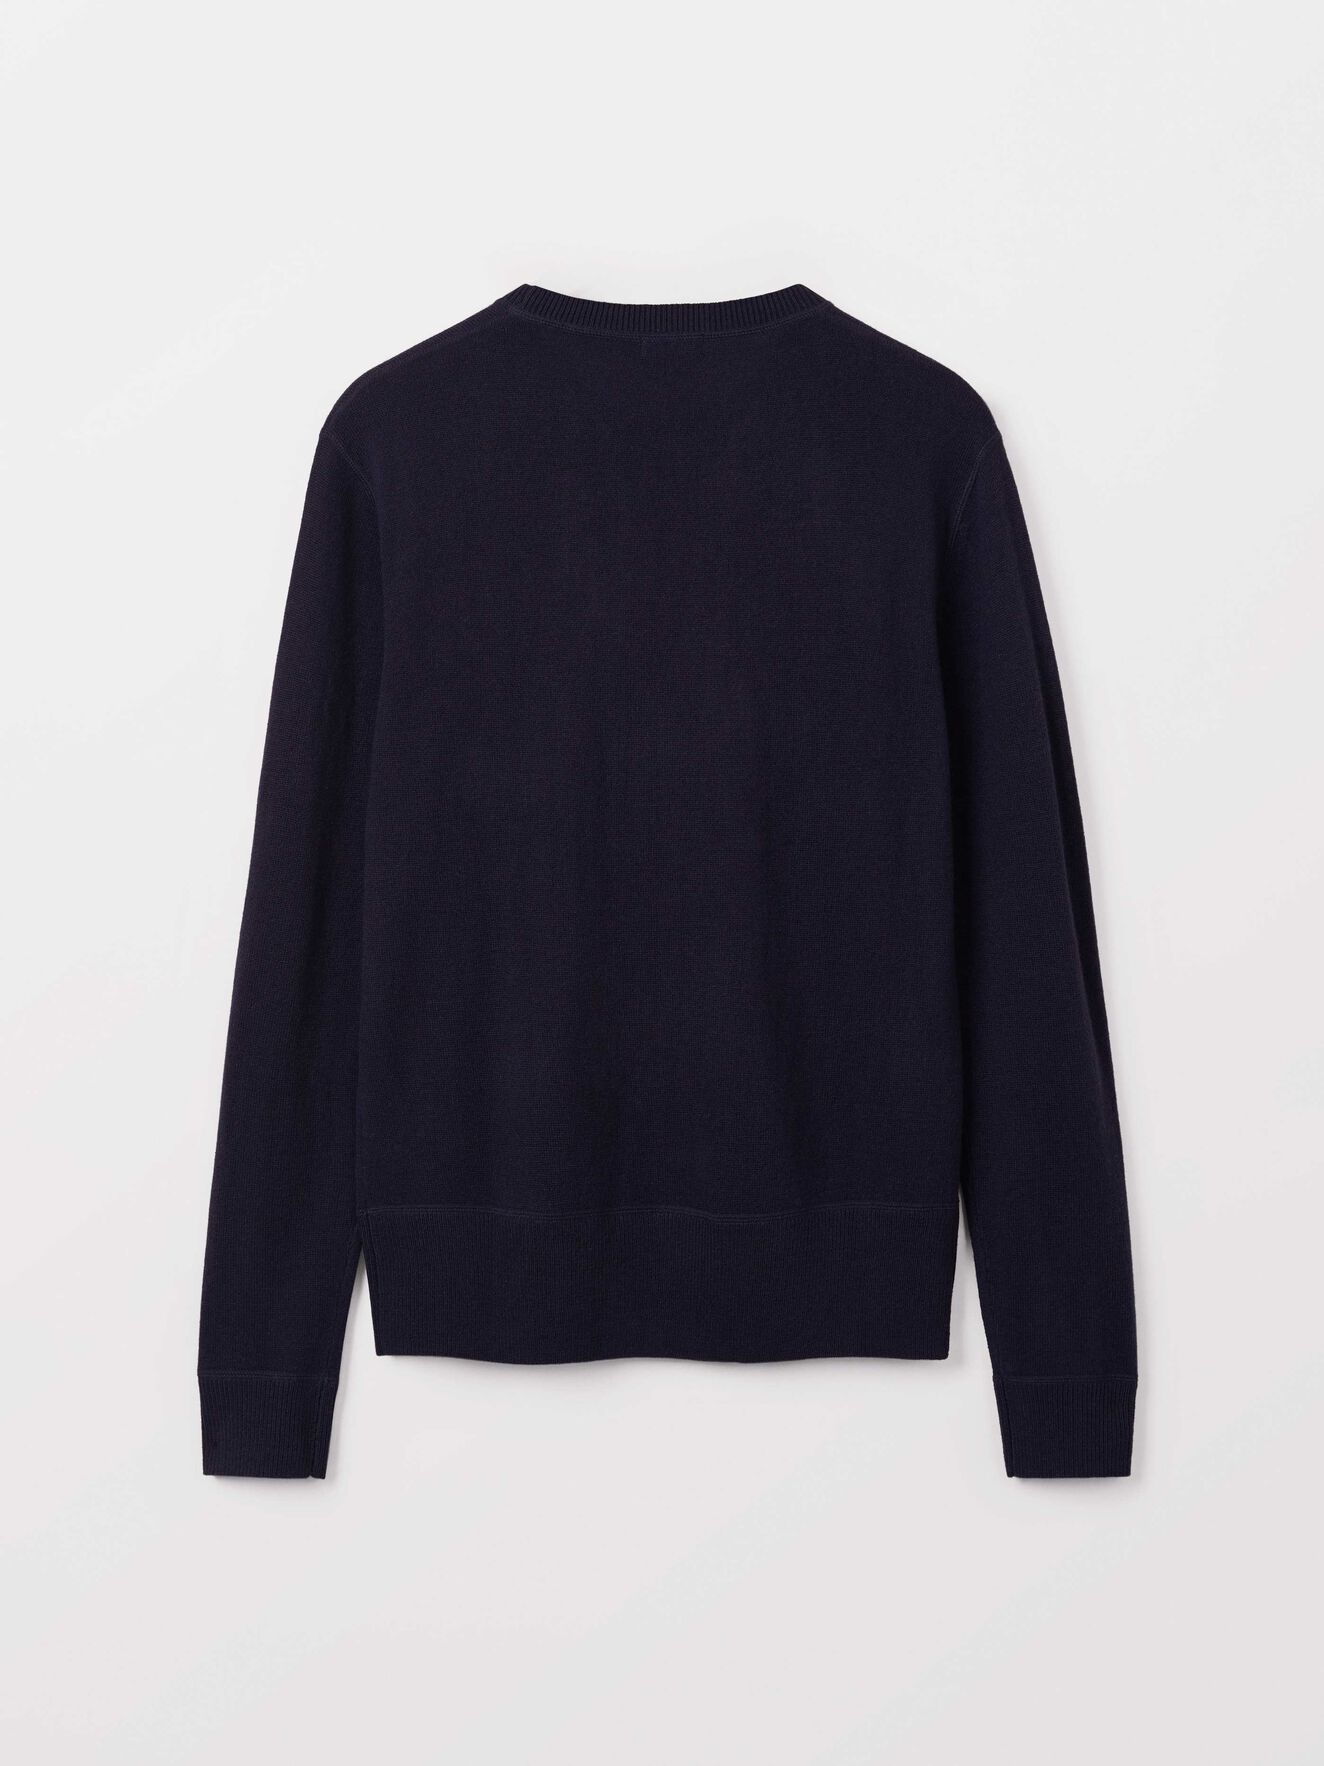 Nikos Pullover in Light Ink from Tiger of Sweden